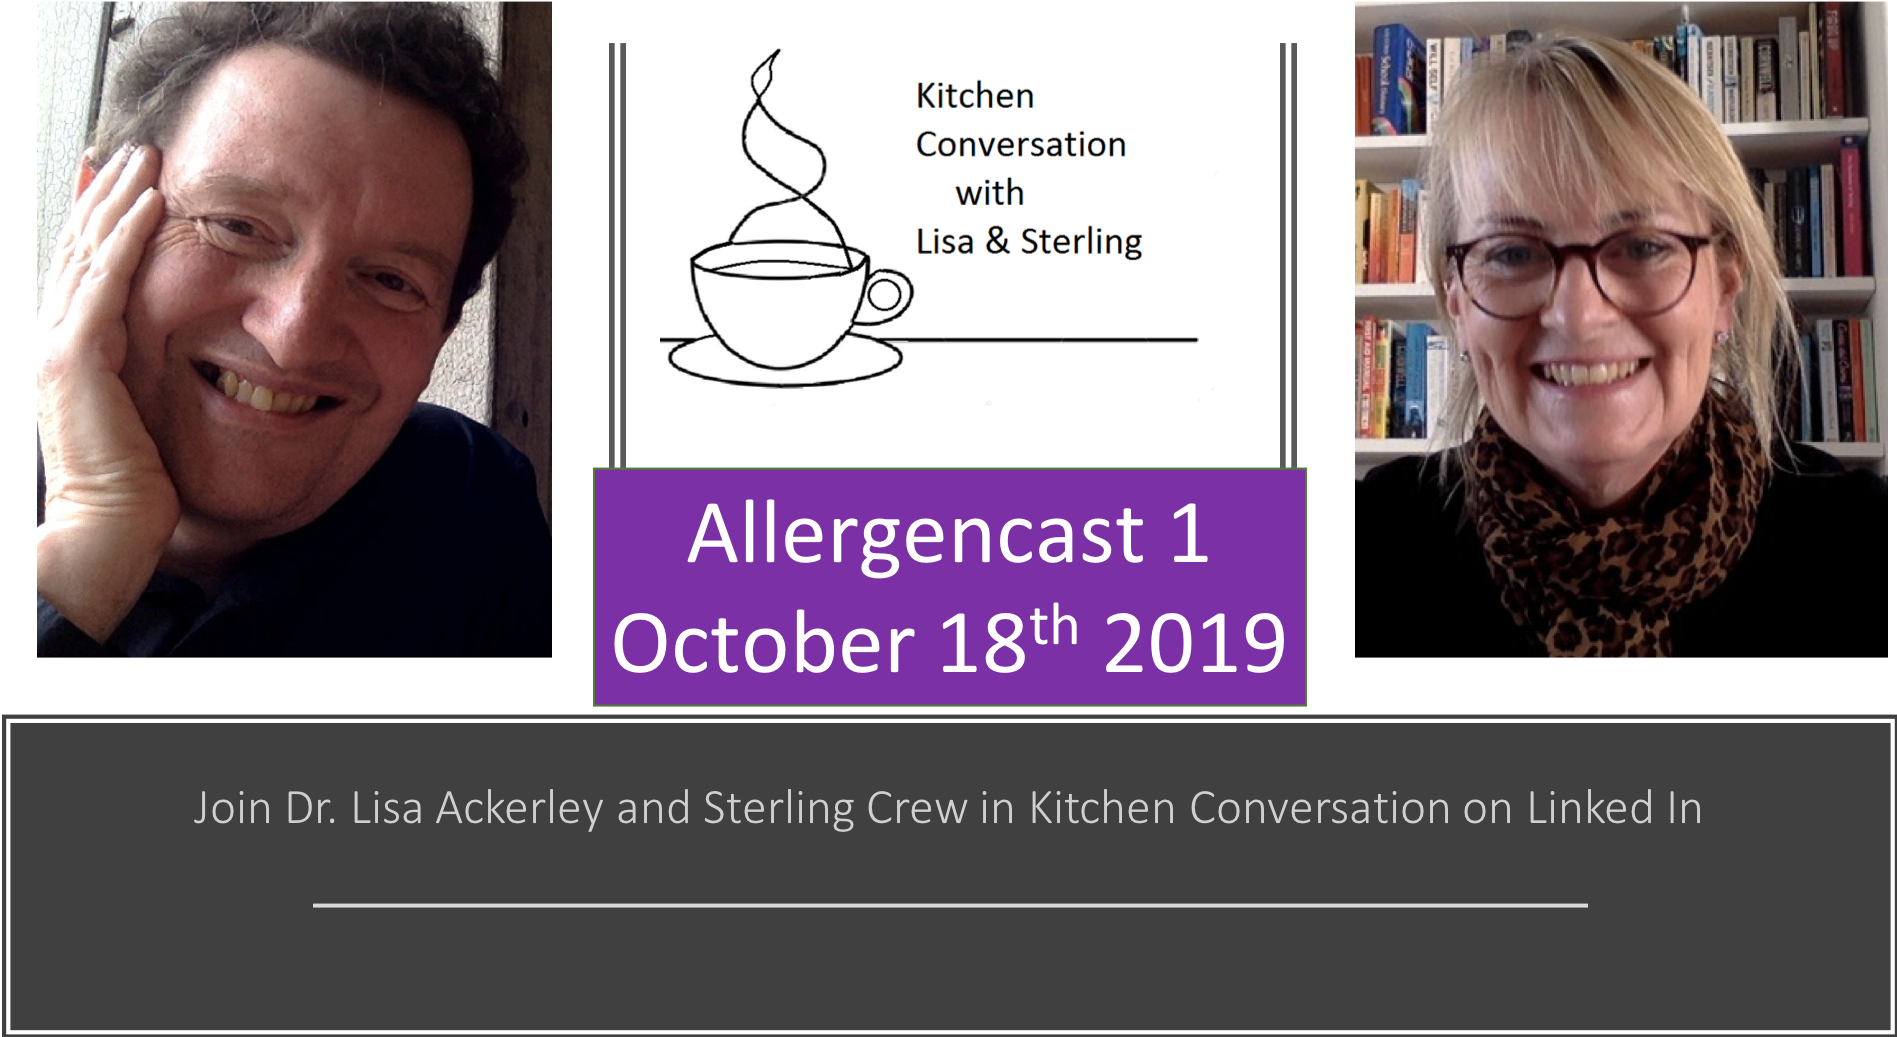 Kitchen Conversation Food Allergen discussion